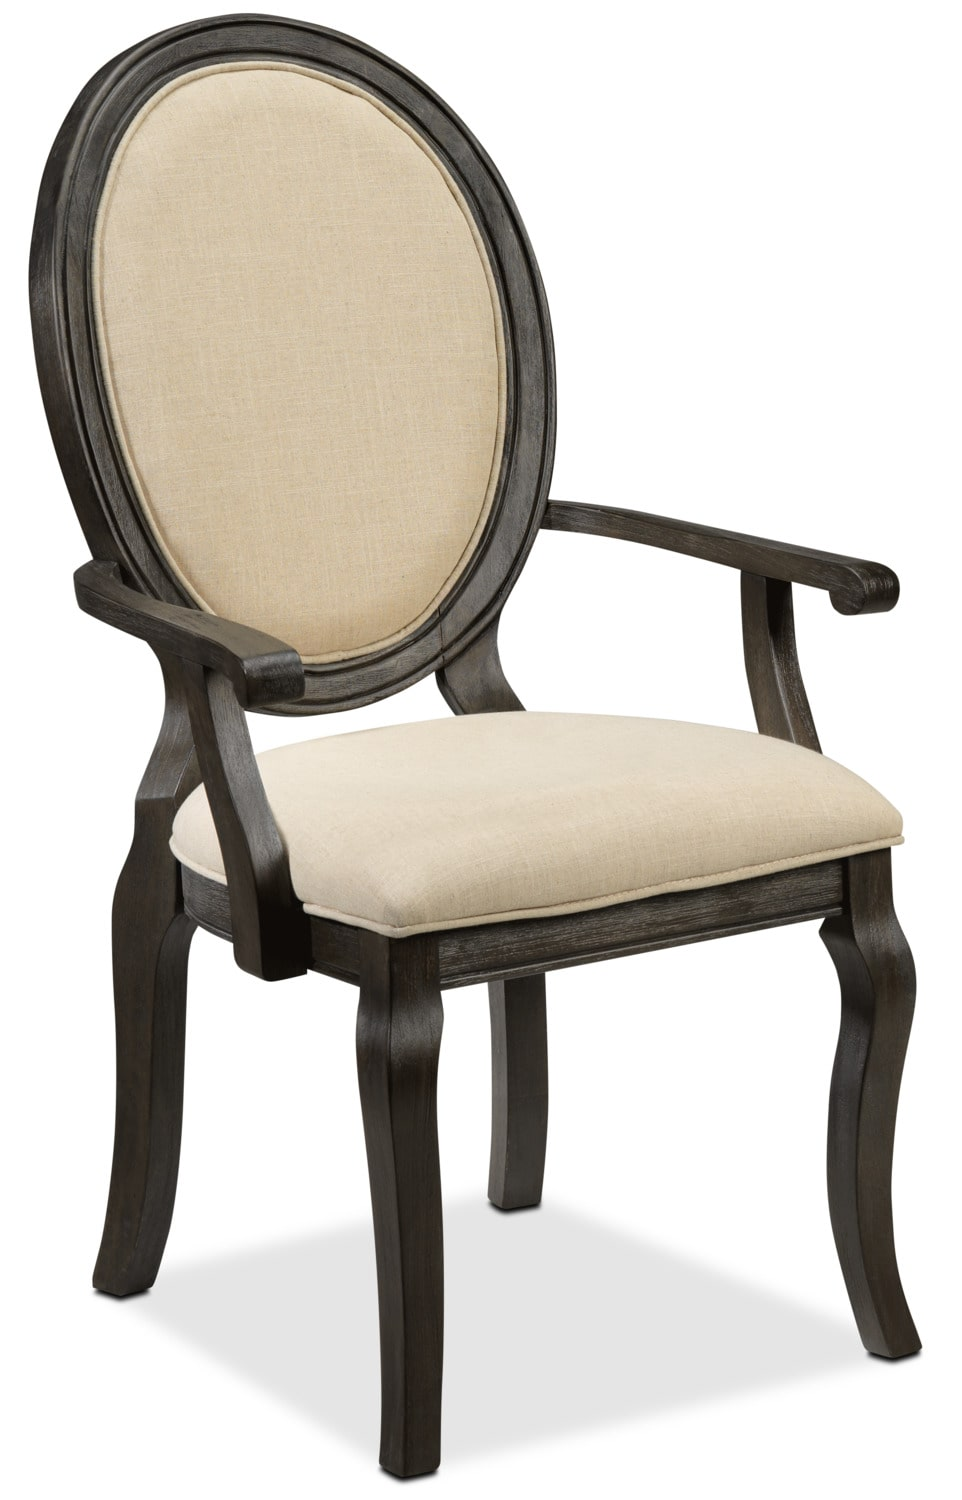 Victoria Arm Chair - Grey and Beige